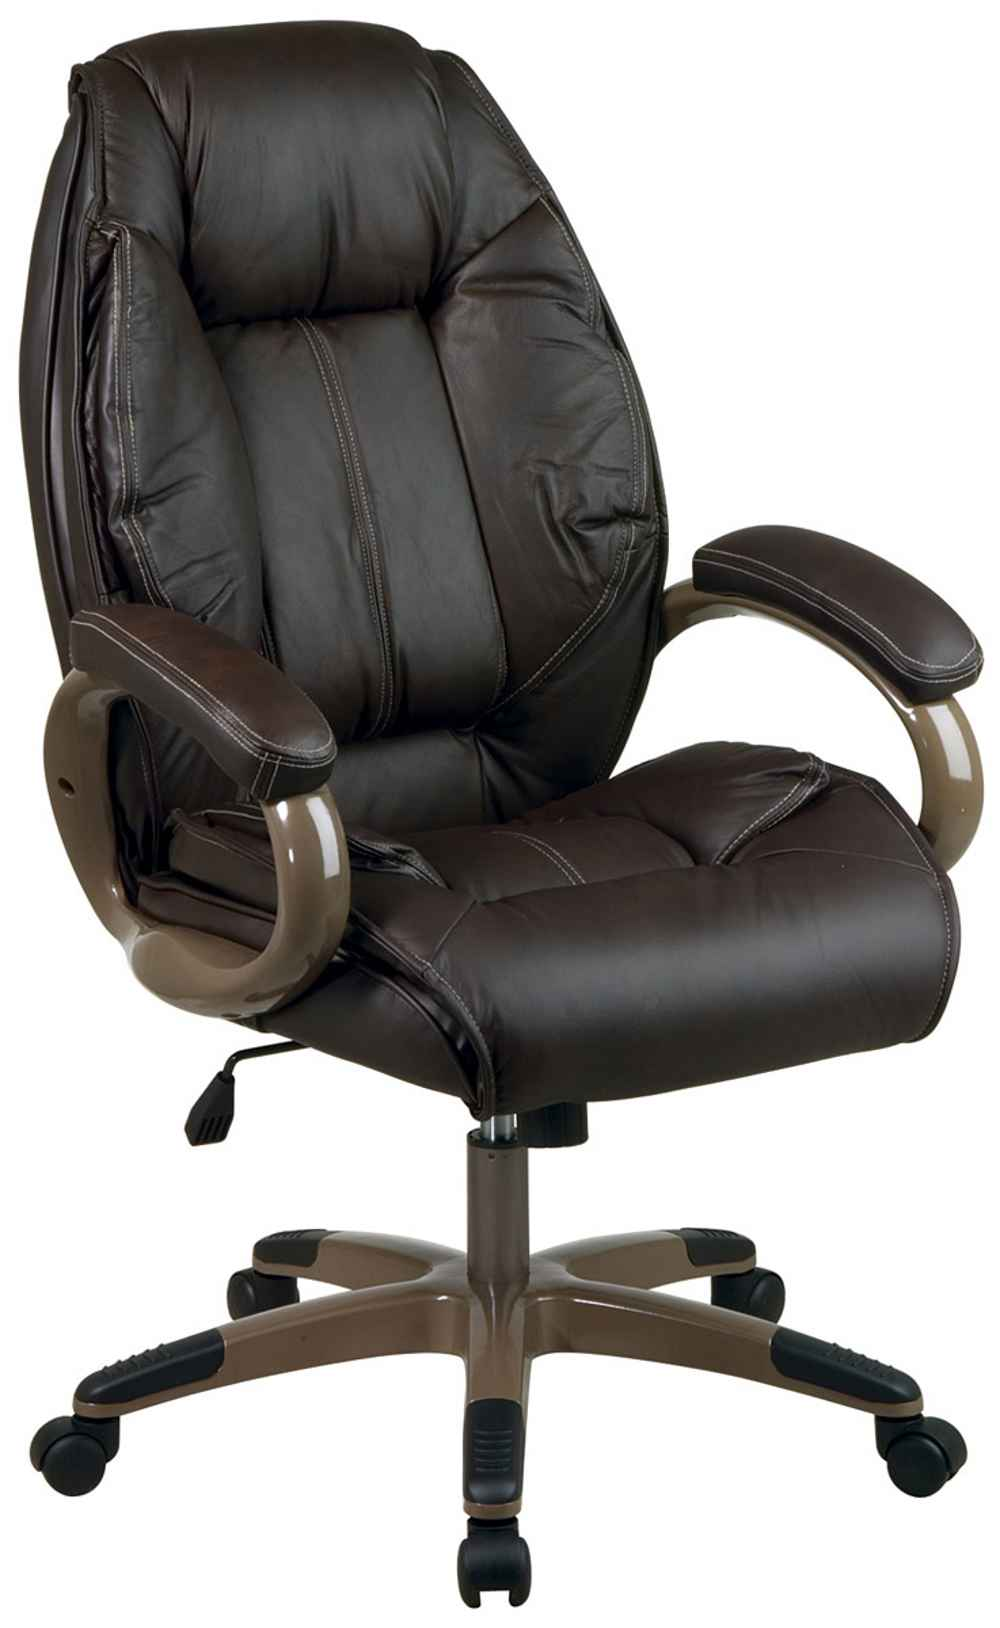 Executive adjustable espresso office computer chair